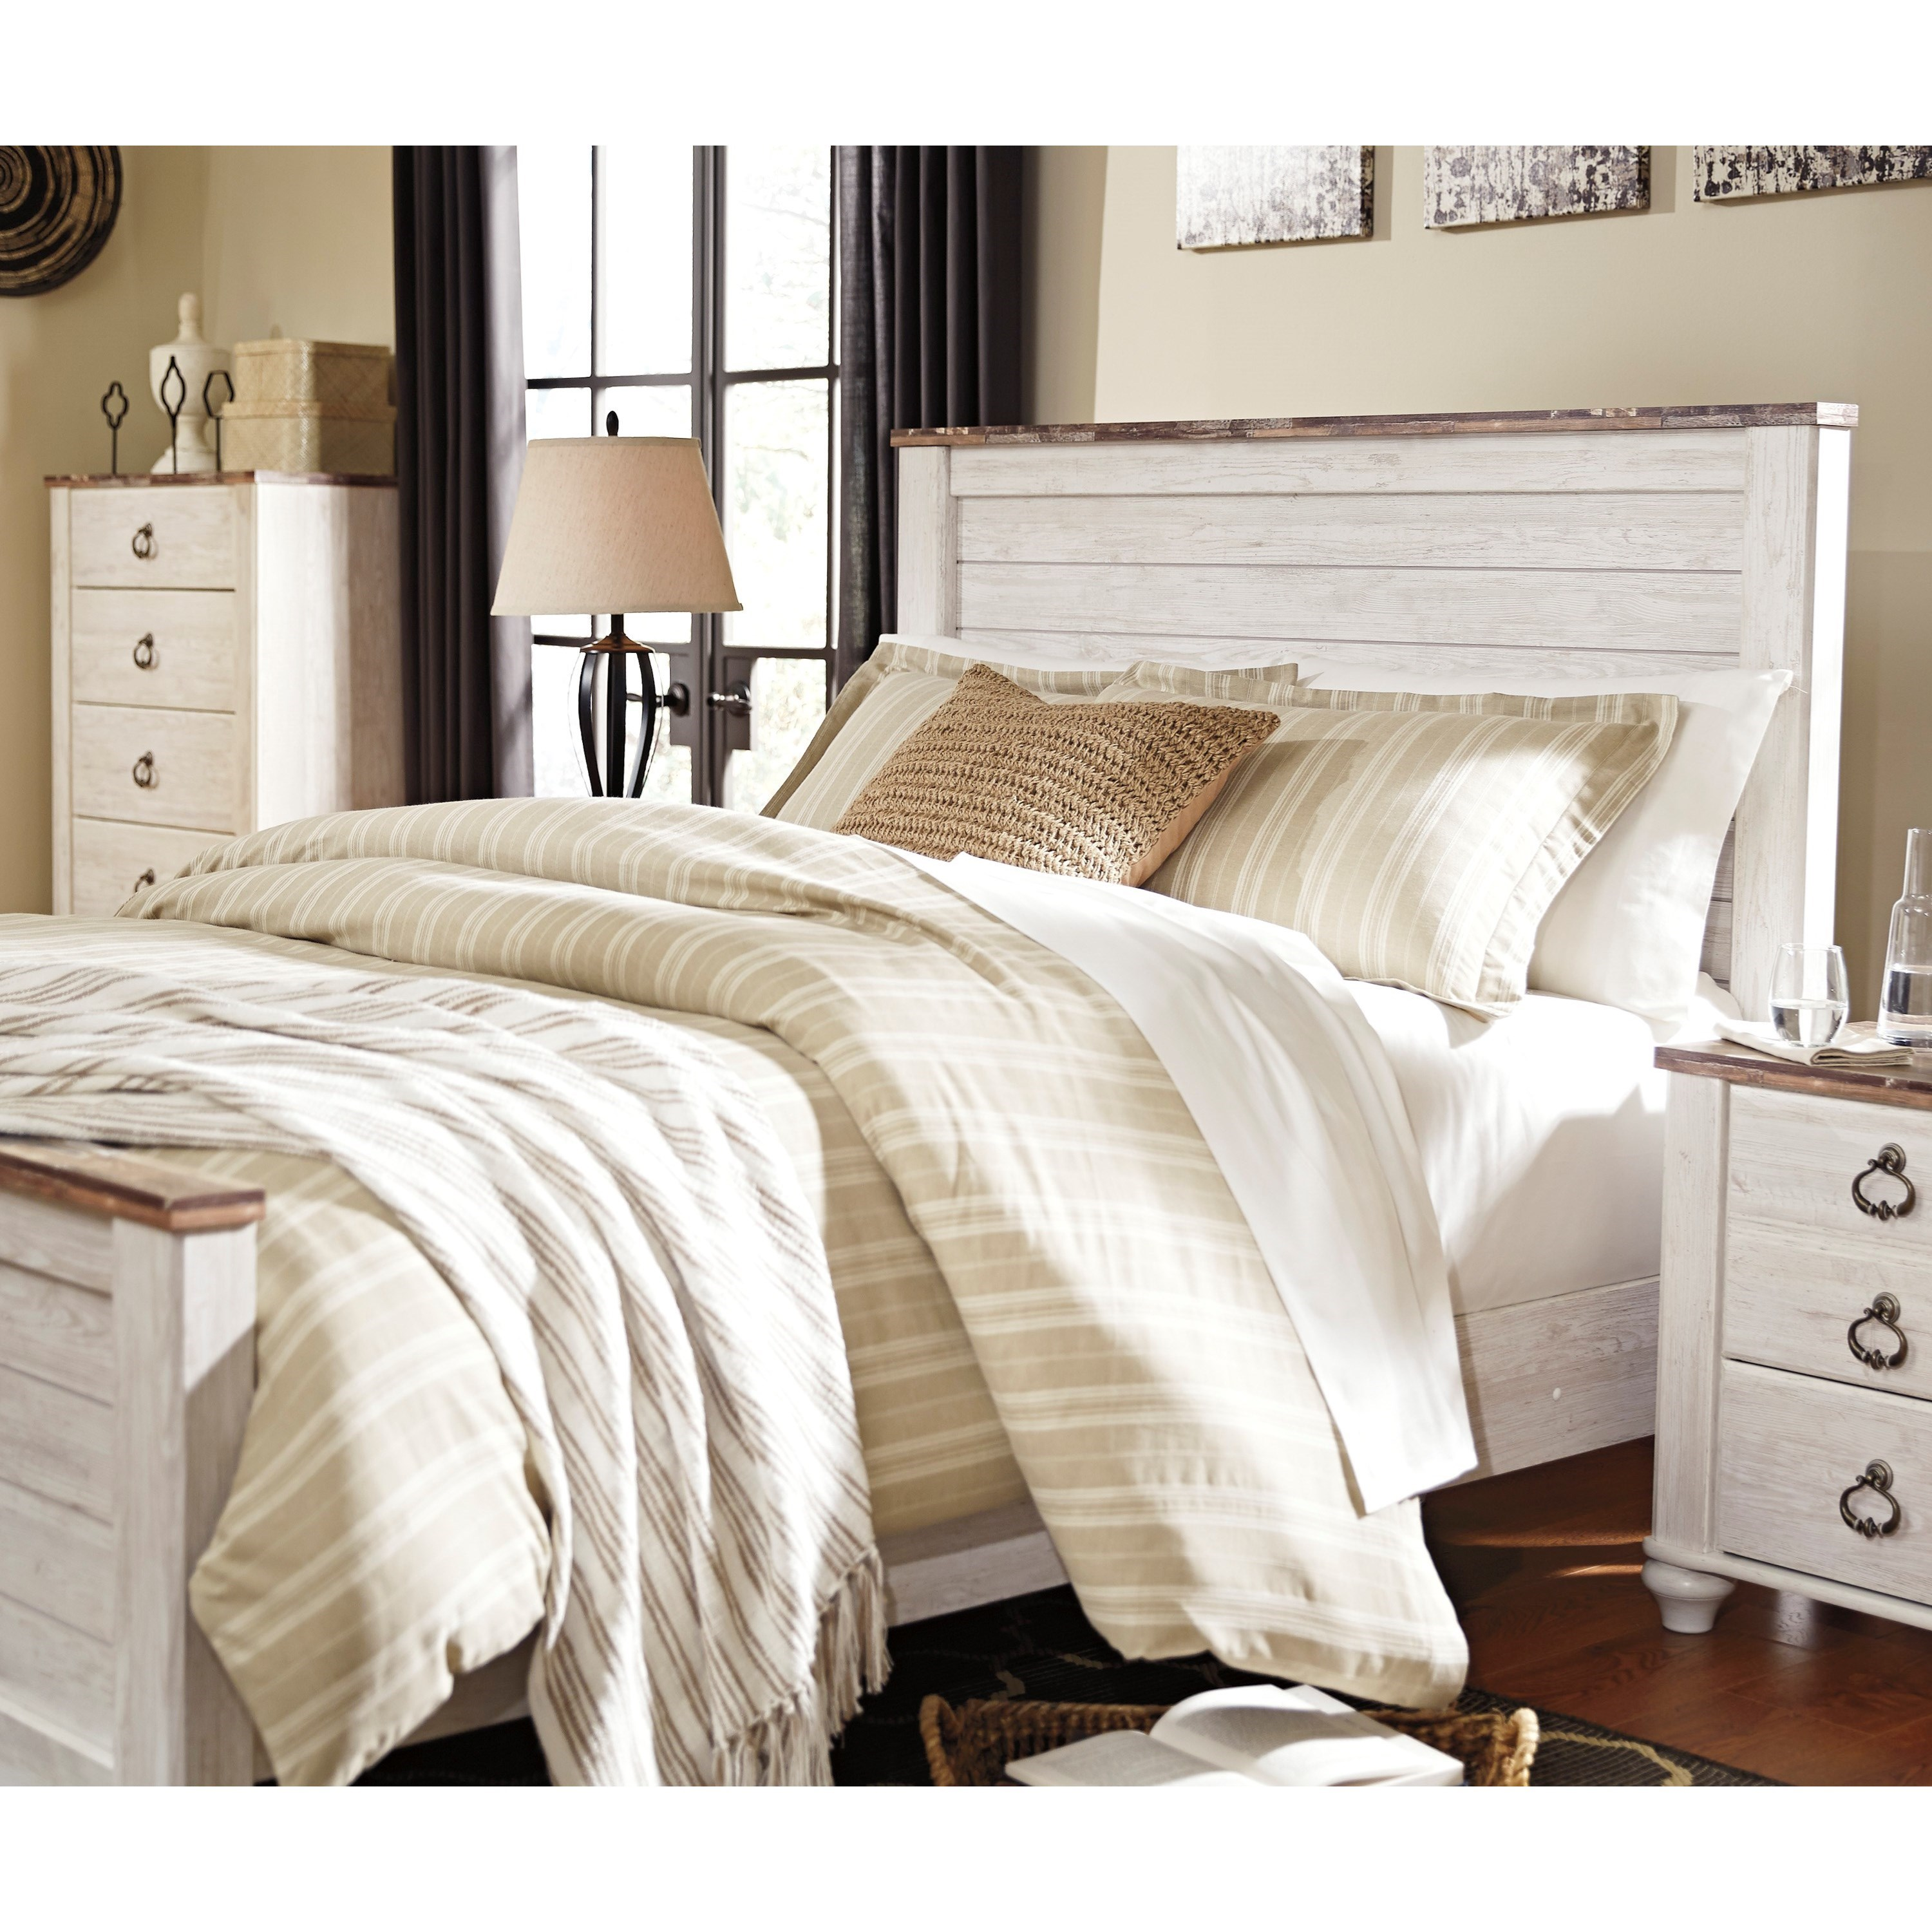 Signature Design By Ashley Willowton Queen Bedroom Group: Signature Design By Ashley Willowton Two-Tone Queen Panel